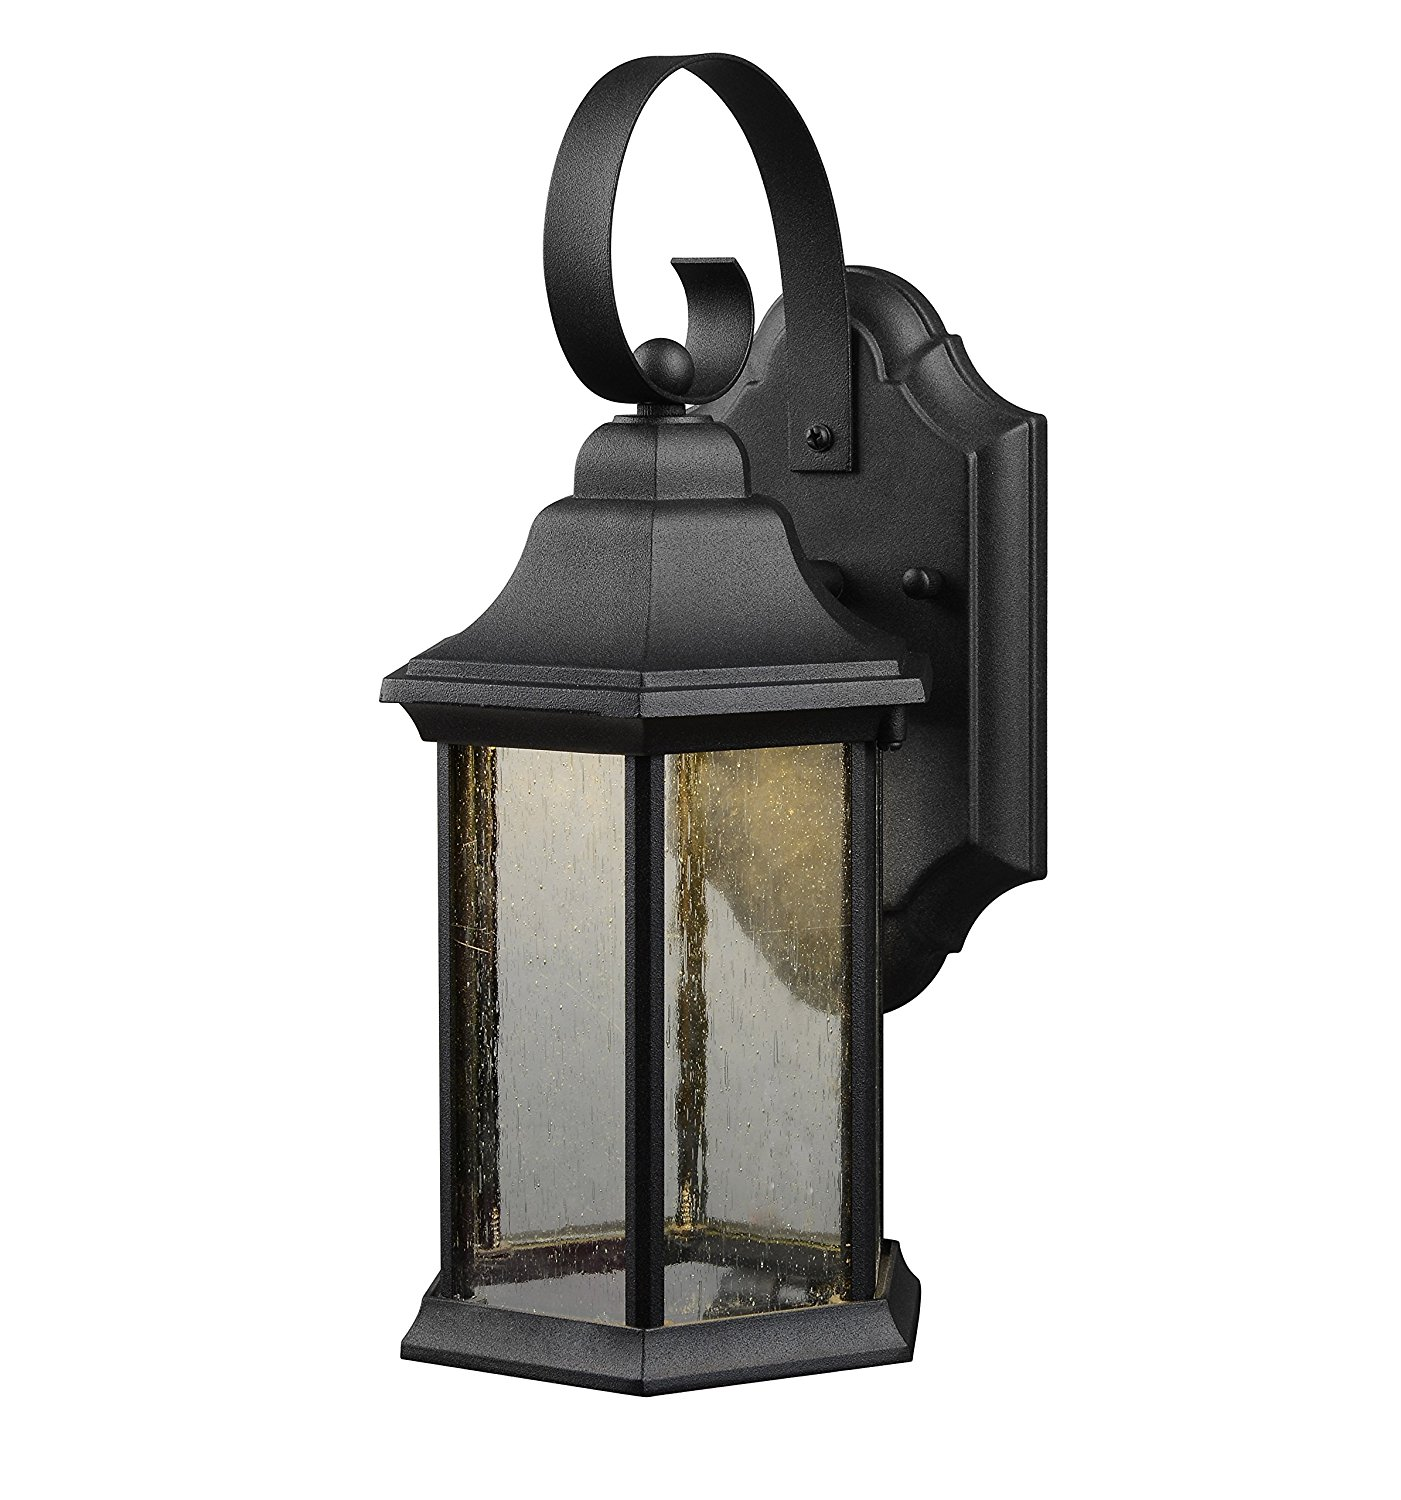 Hardware House LLC 21-1932 1-Light Led Lantern Black with Frosted Glass Lantern Wall Fixture with 1-Light Comes with Seedy Style Glass Uses (1) 10W Led Bulb - Included